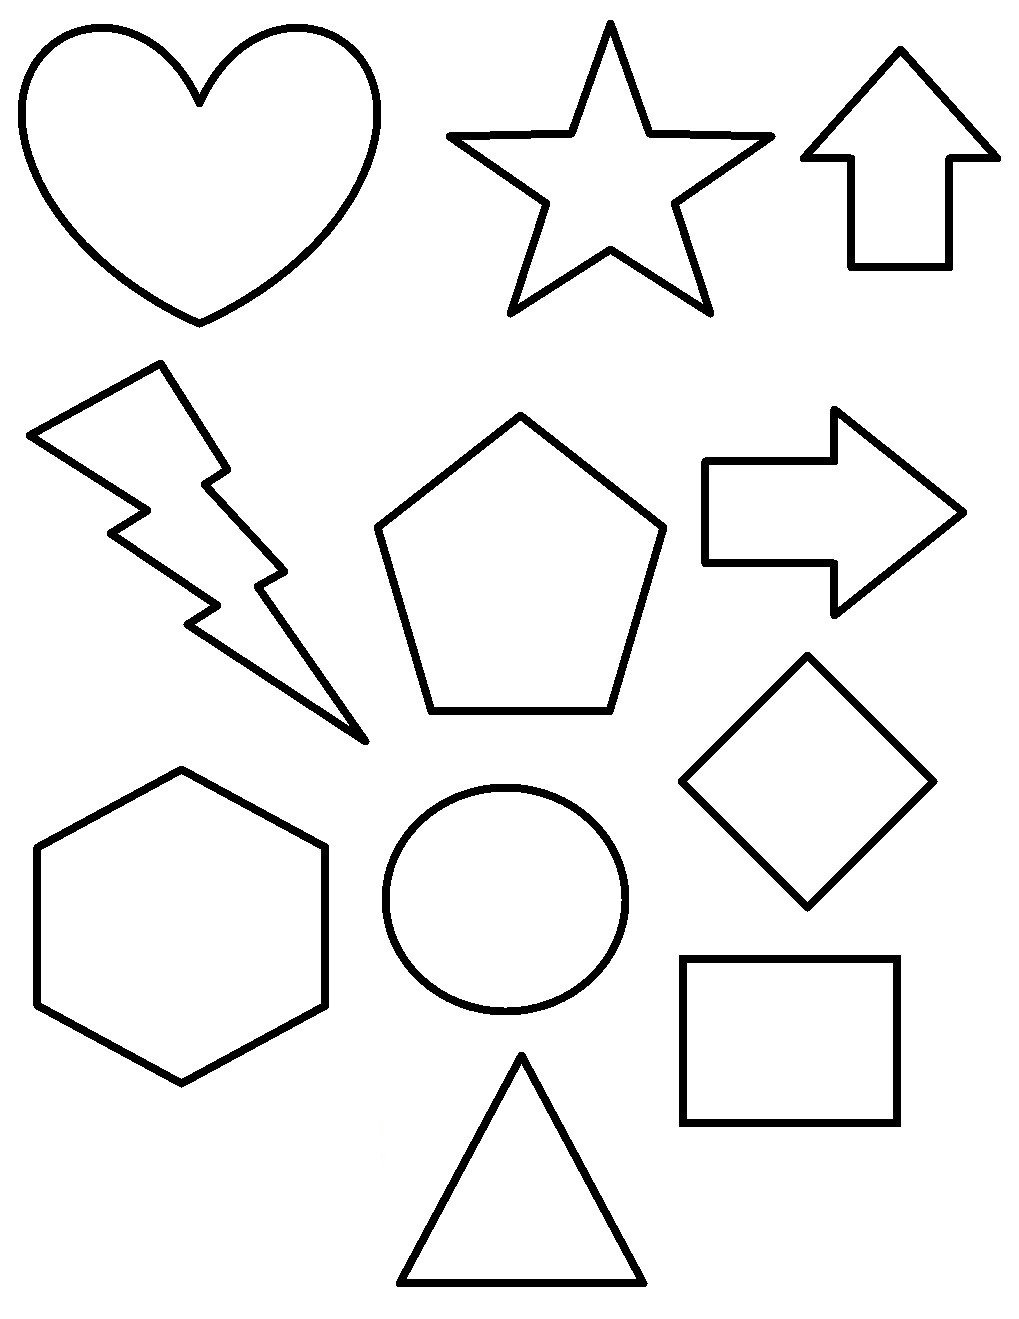 Hexagon Worksheet for Kindergarten Free Printable Shapes Coloring Pages for Kids